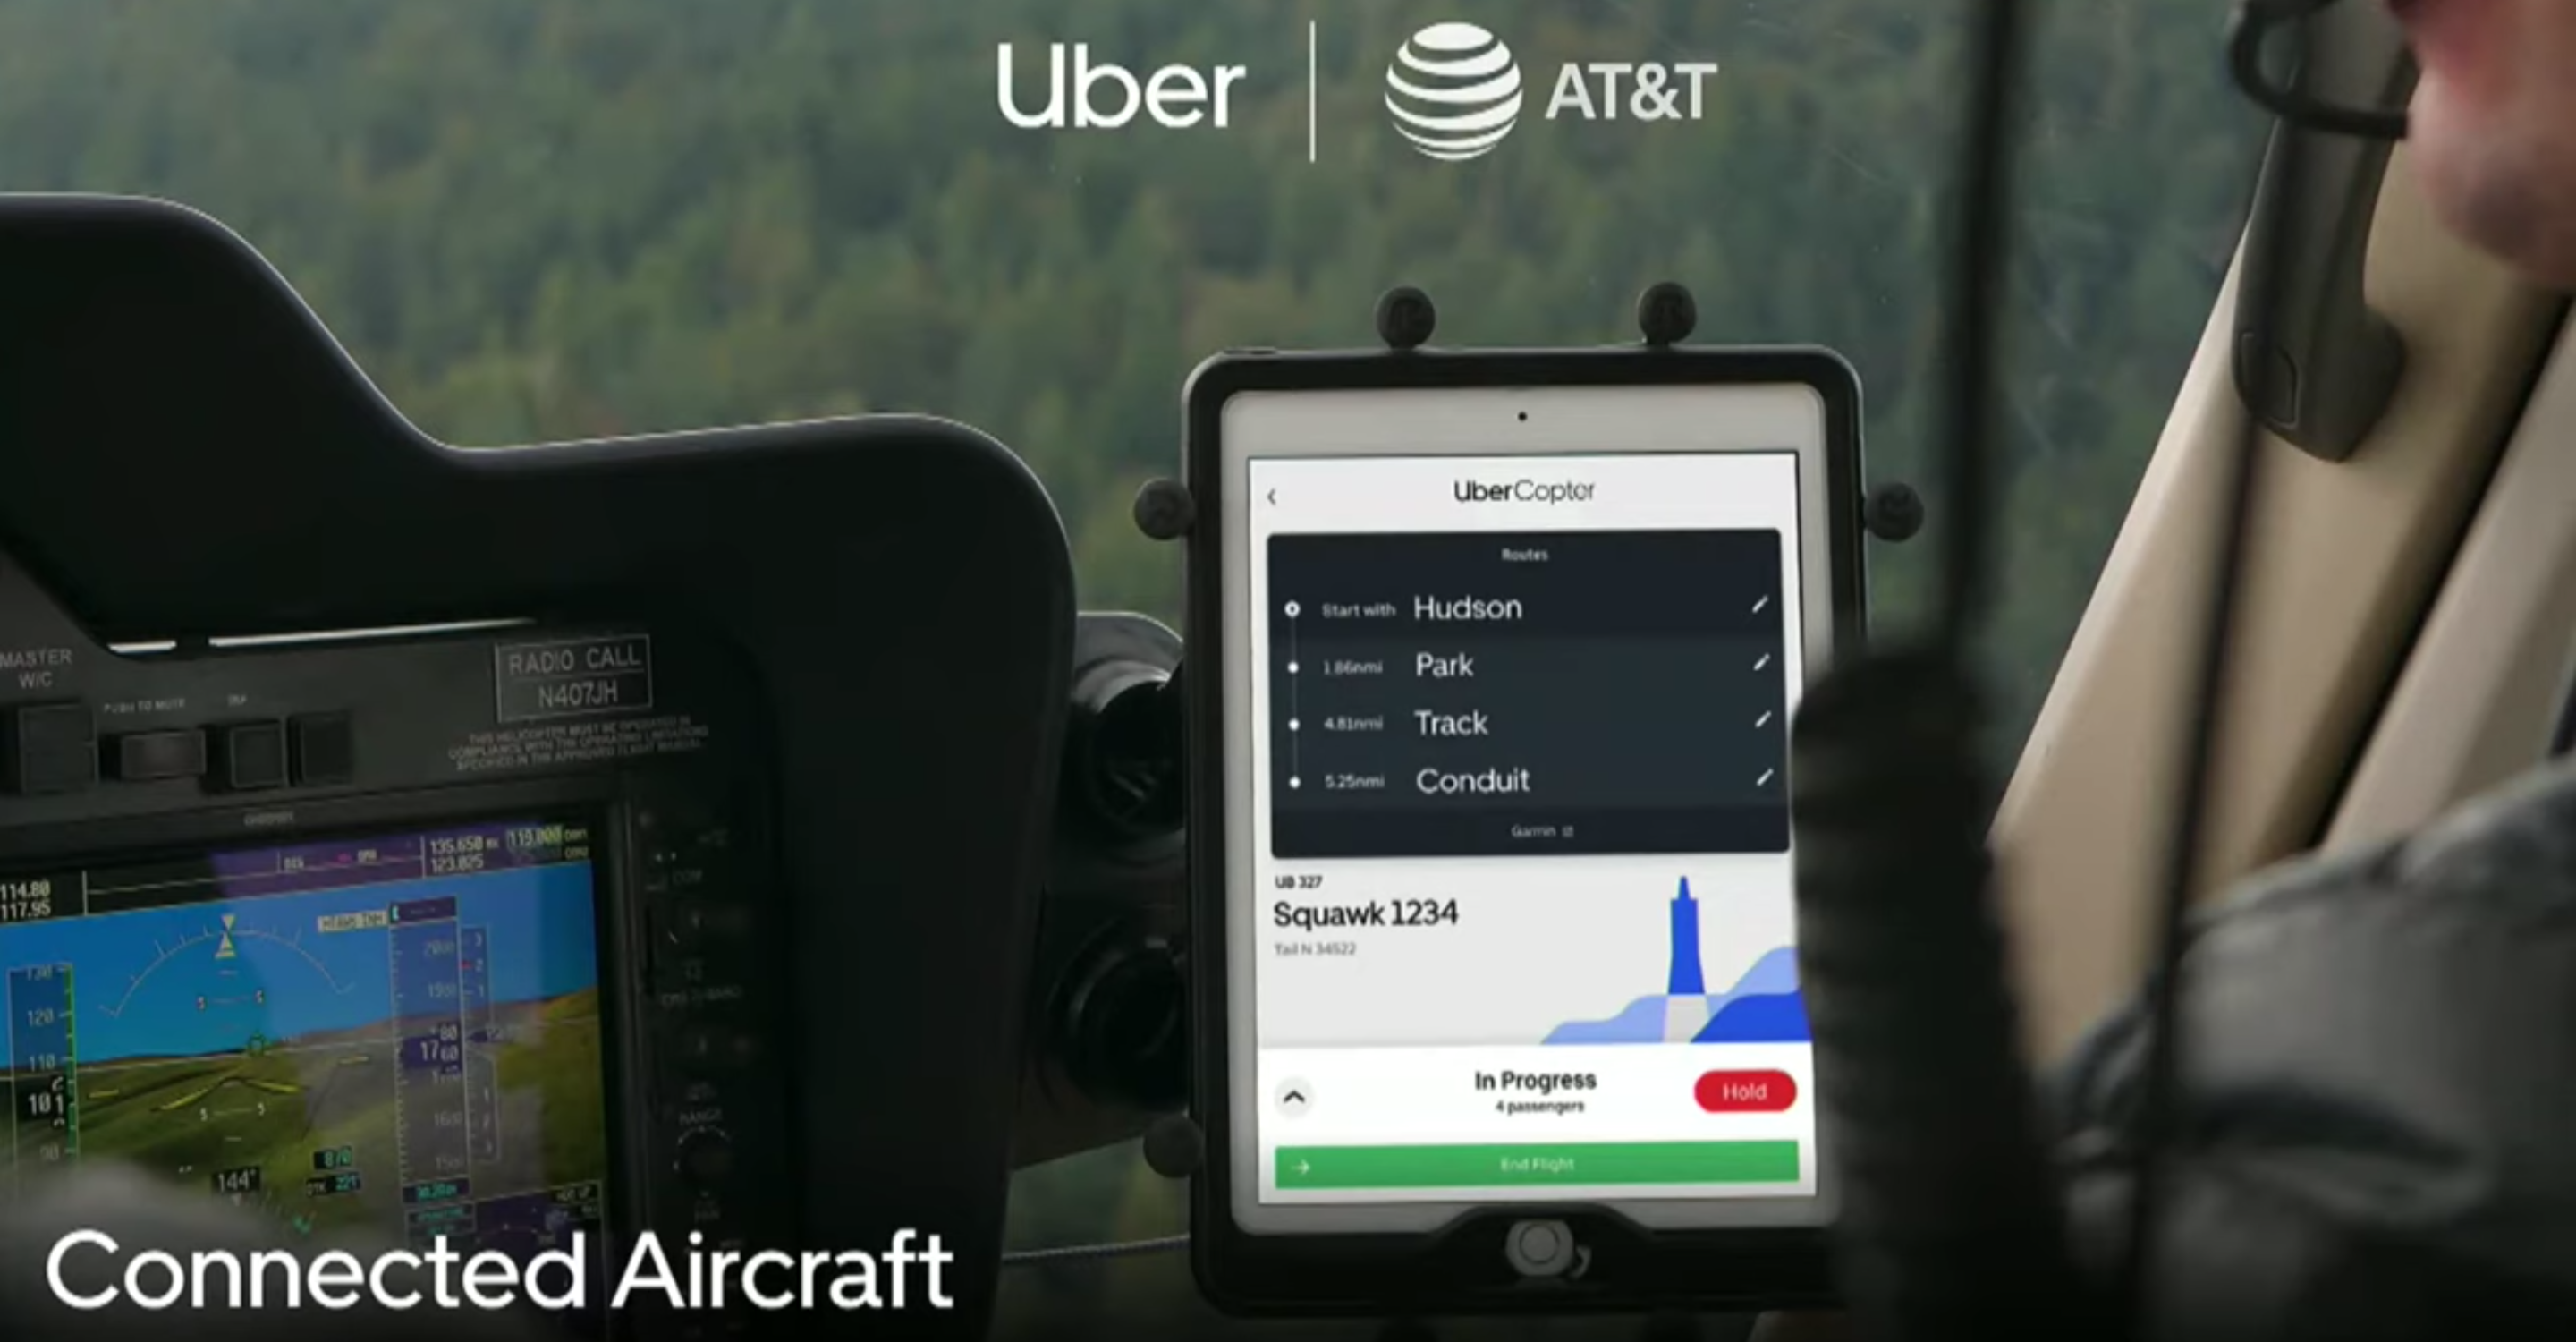 Uber Air and AT&T